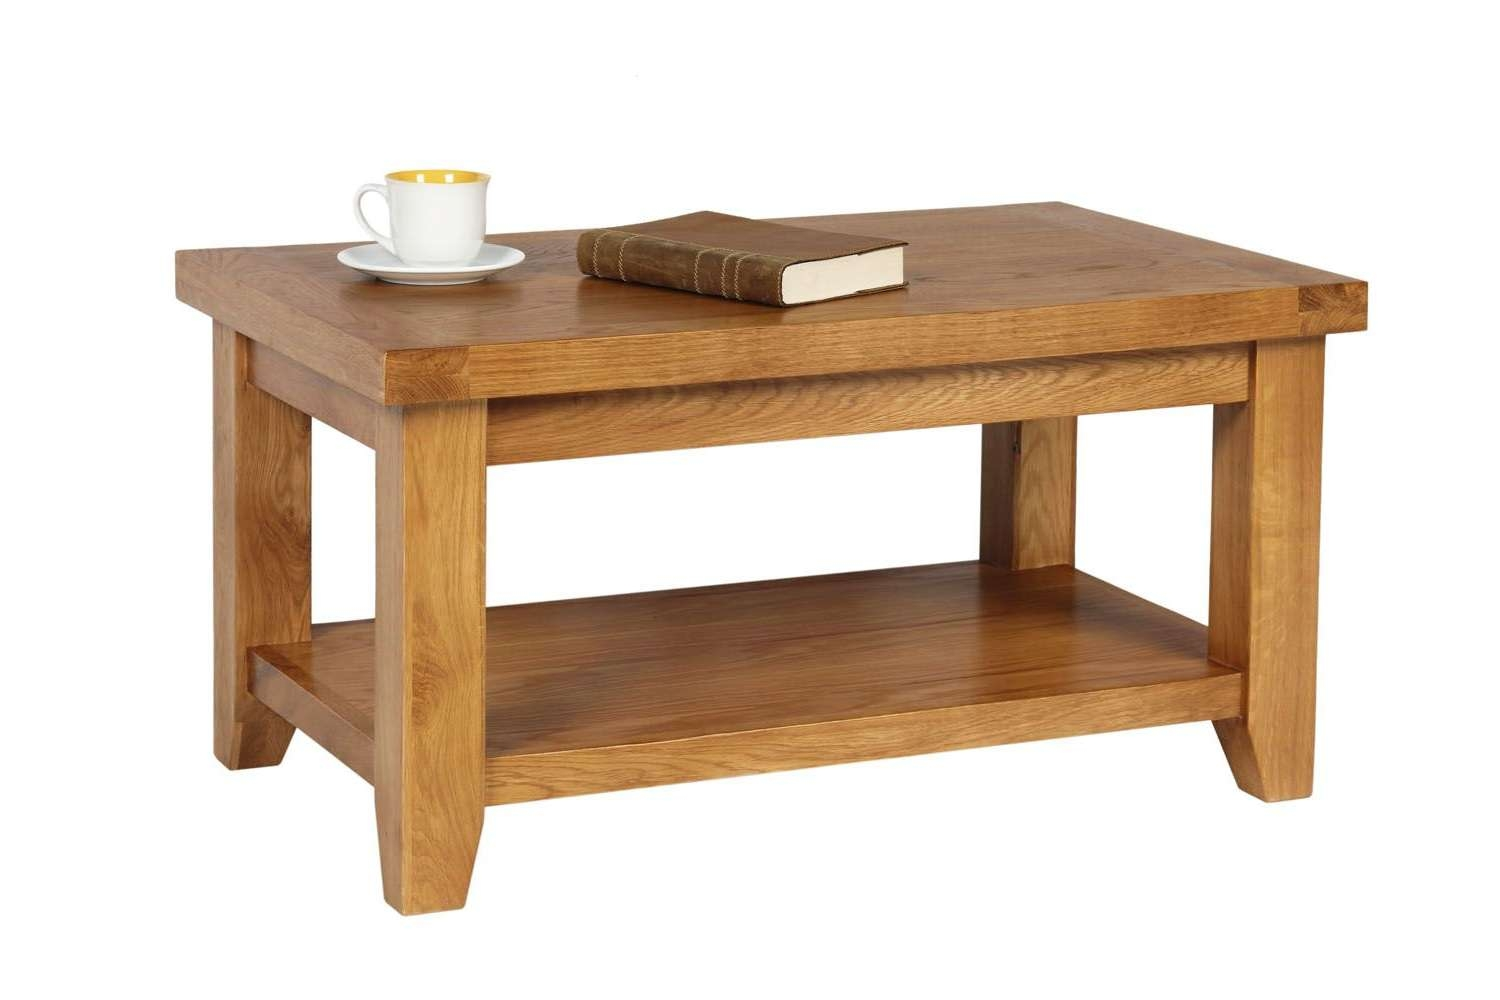 Trendy Oak Coffee Table With Shelf With Country Oak Coffee Table With Shelf (View 17 of 20)